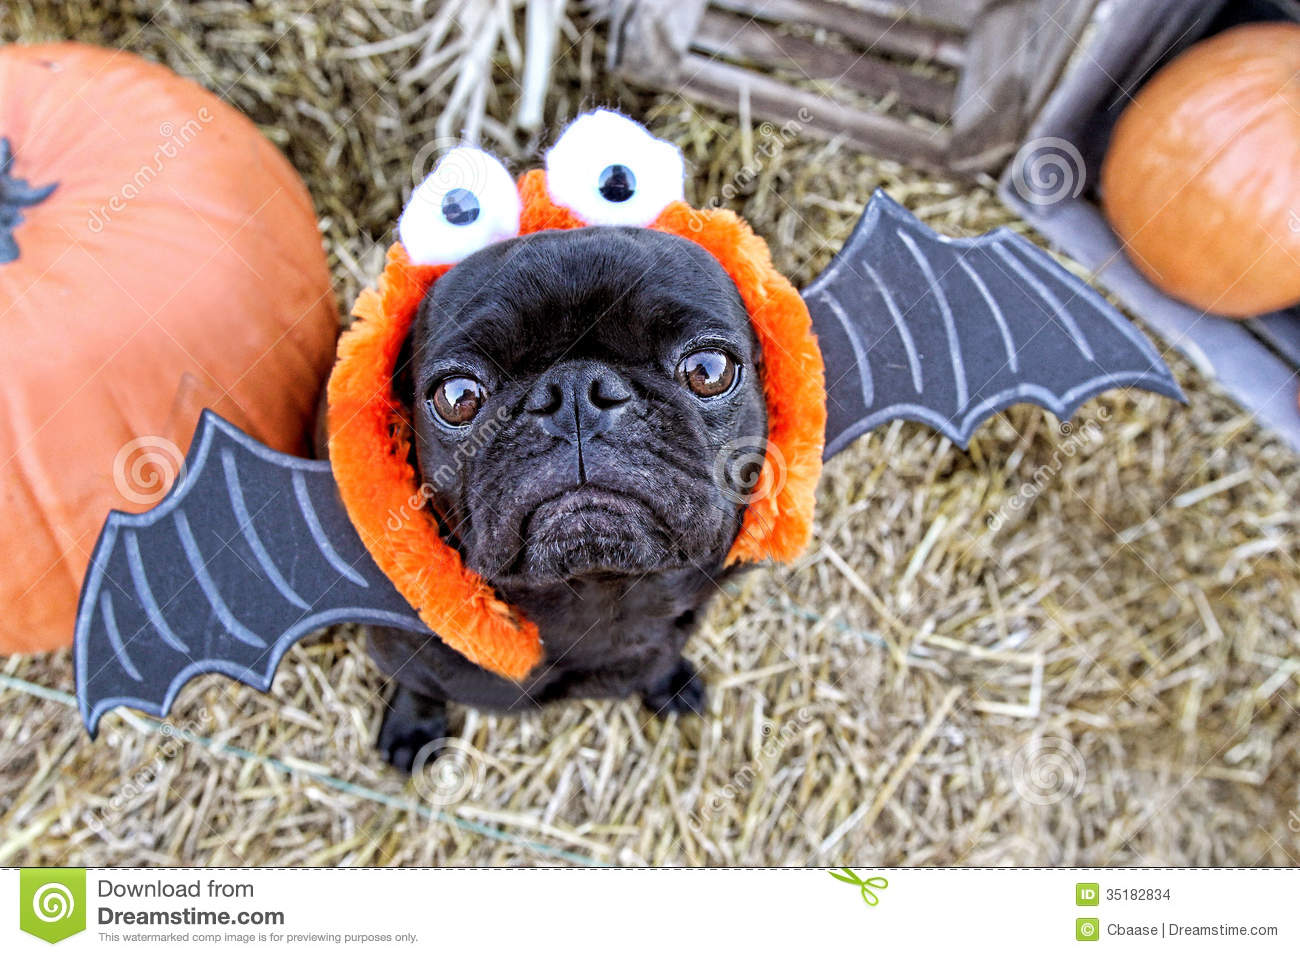 download bat pug stock photo image of halloween costume straw 35182834